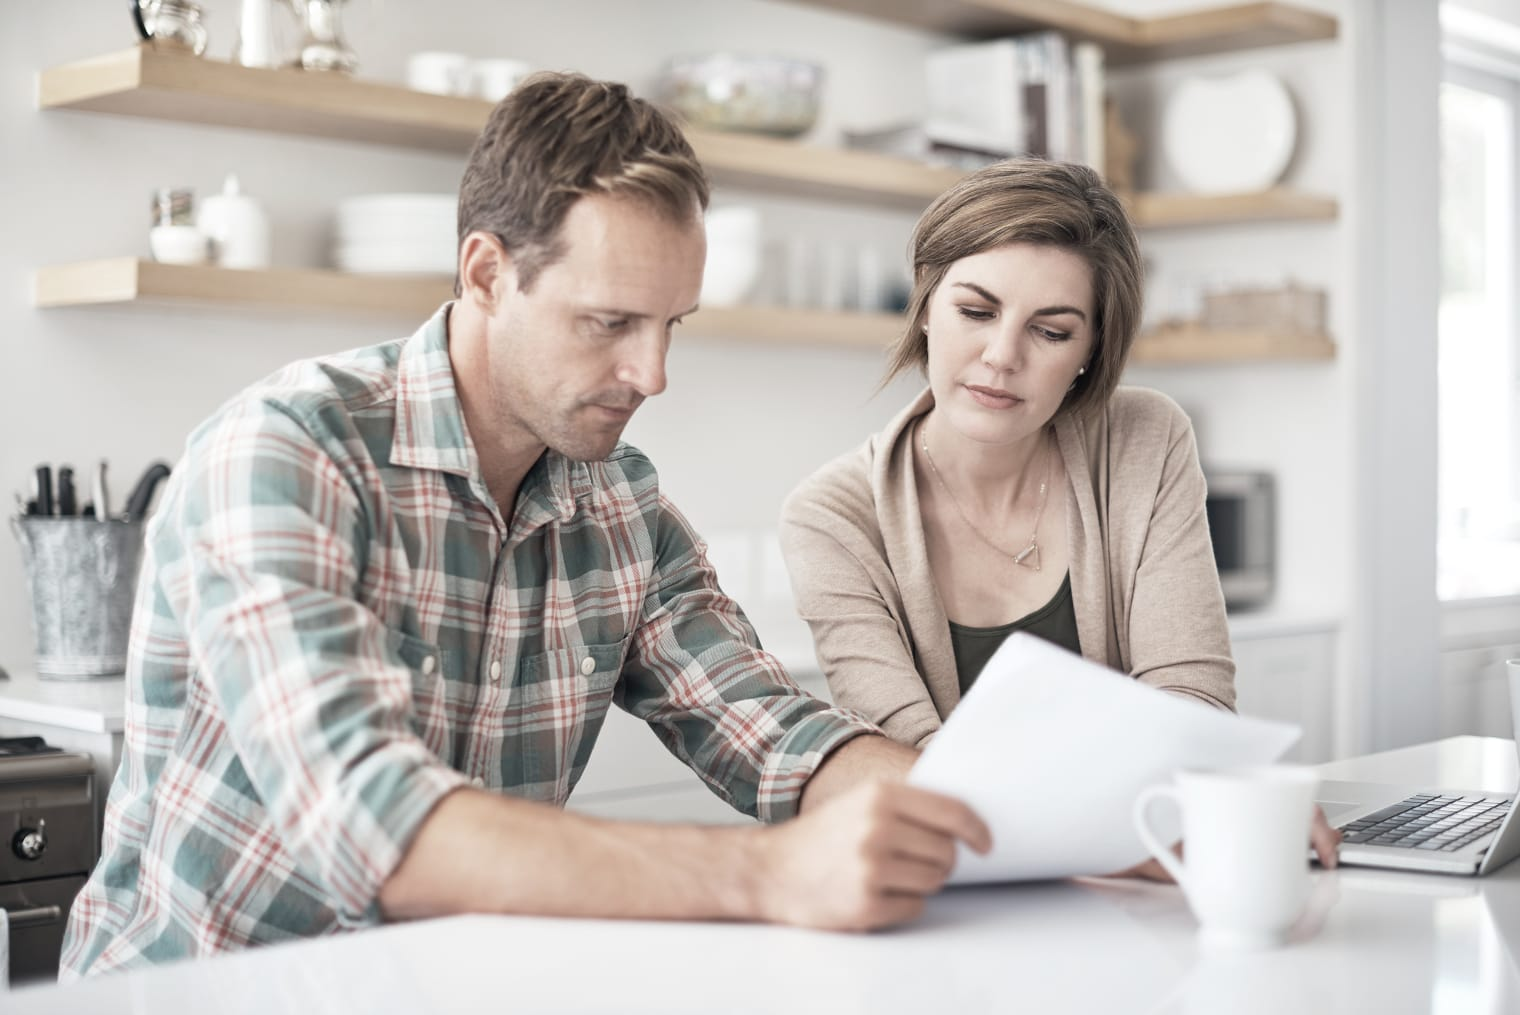 A man and a woman are concentrating on documents that the man is holding in his hands; kitchen shelves are visible in the background.